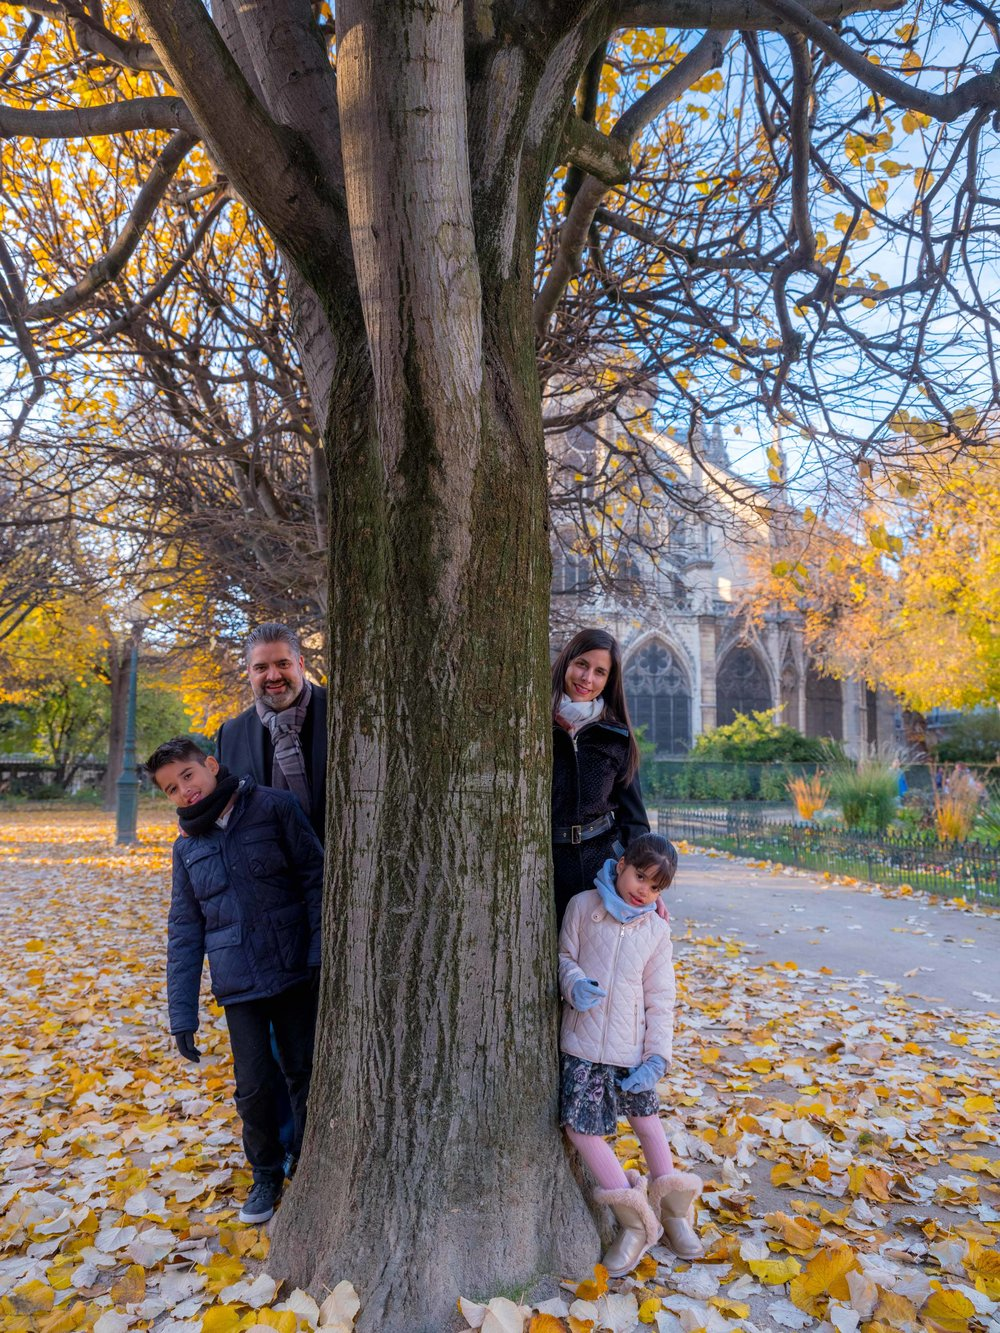 family in pqris in autumn at notre dame